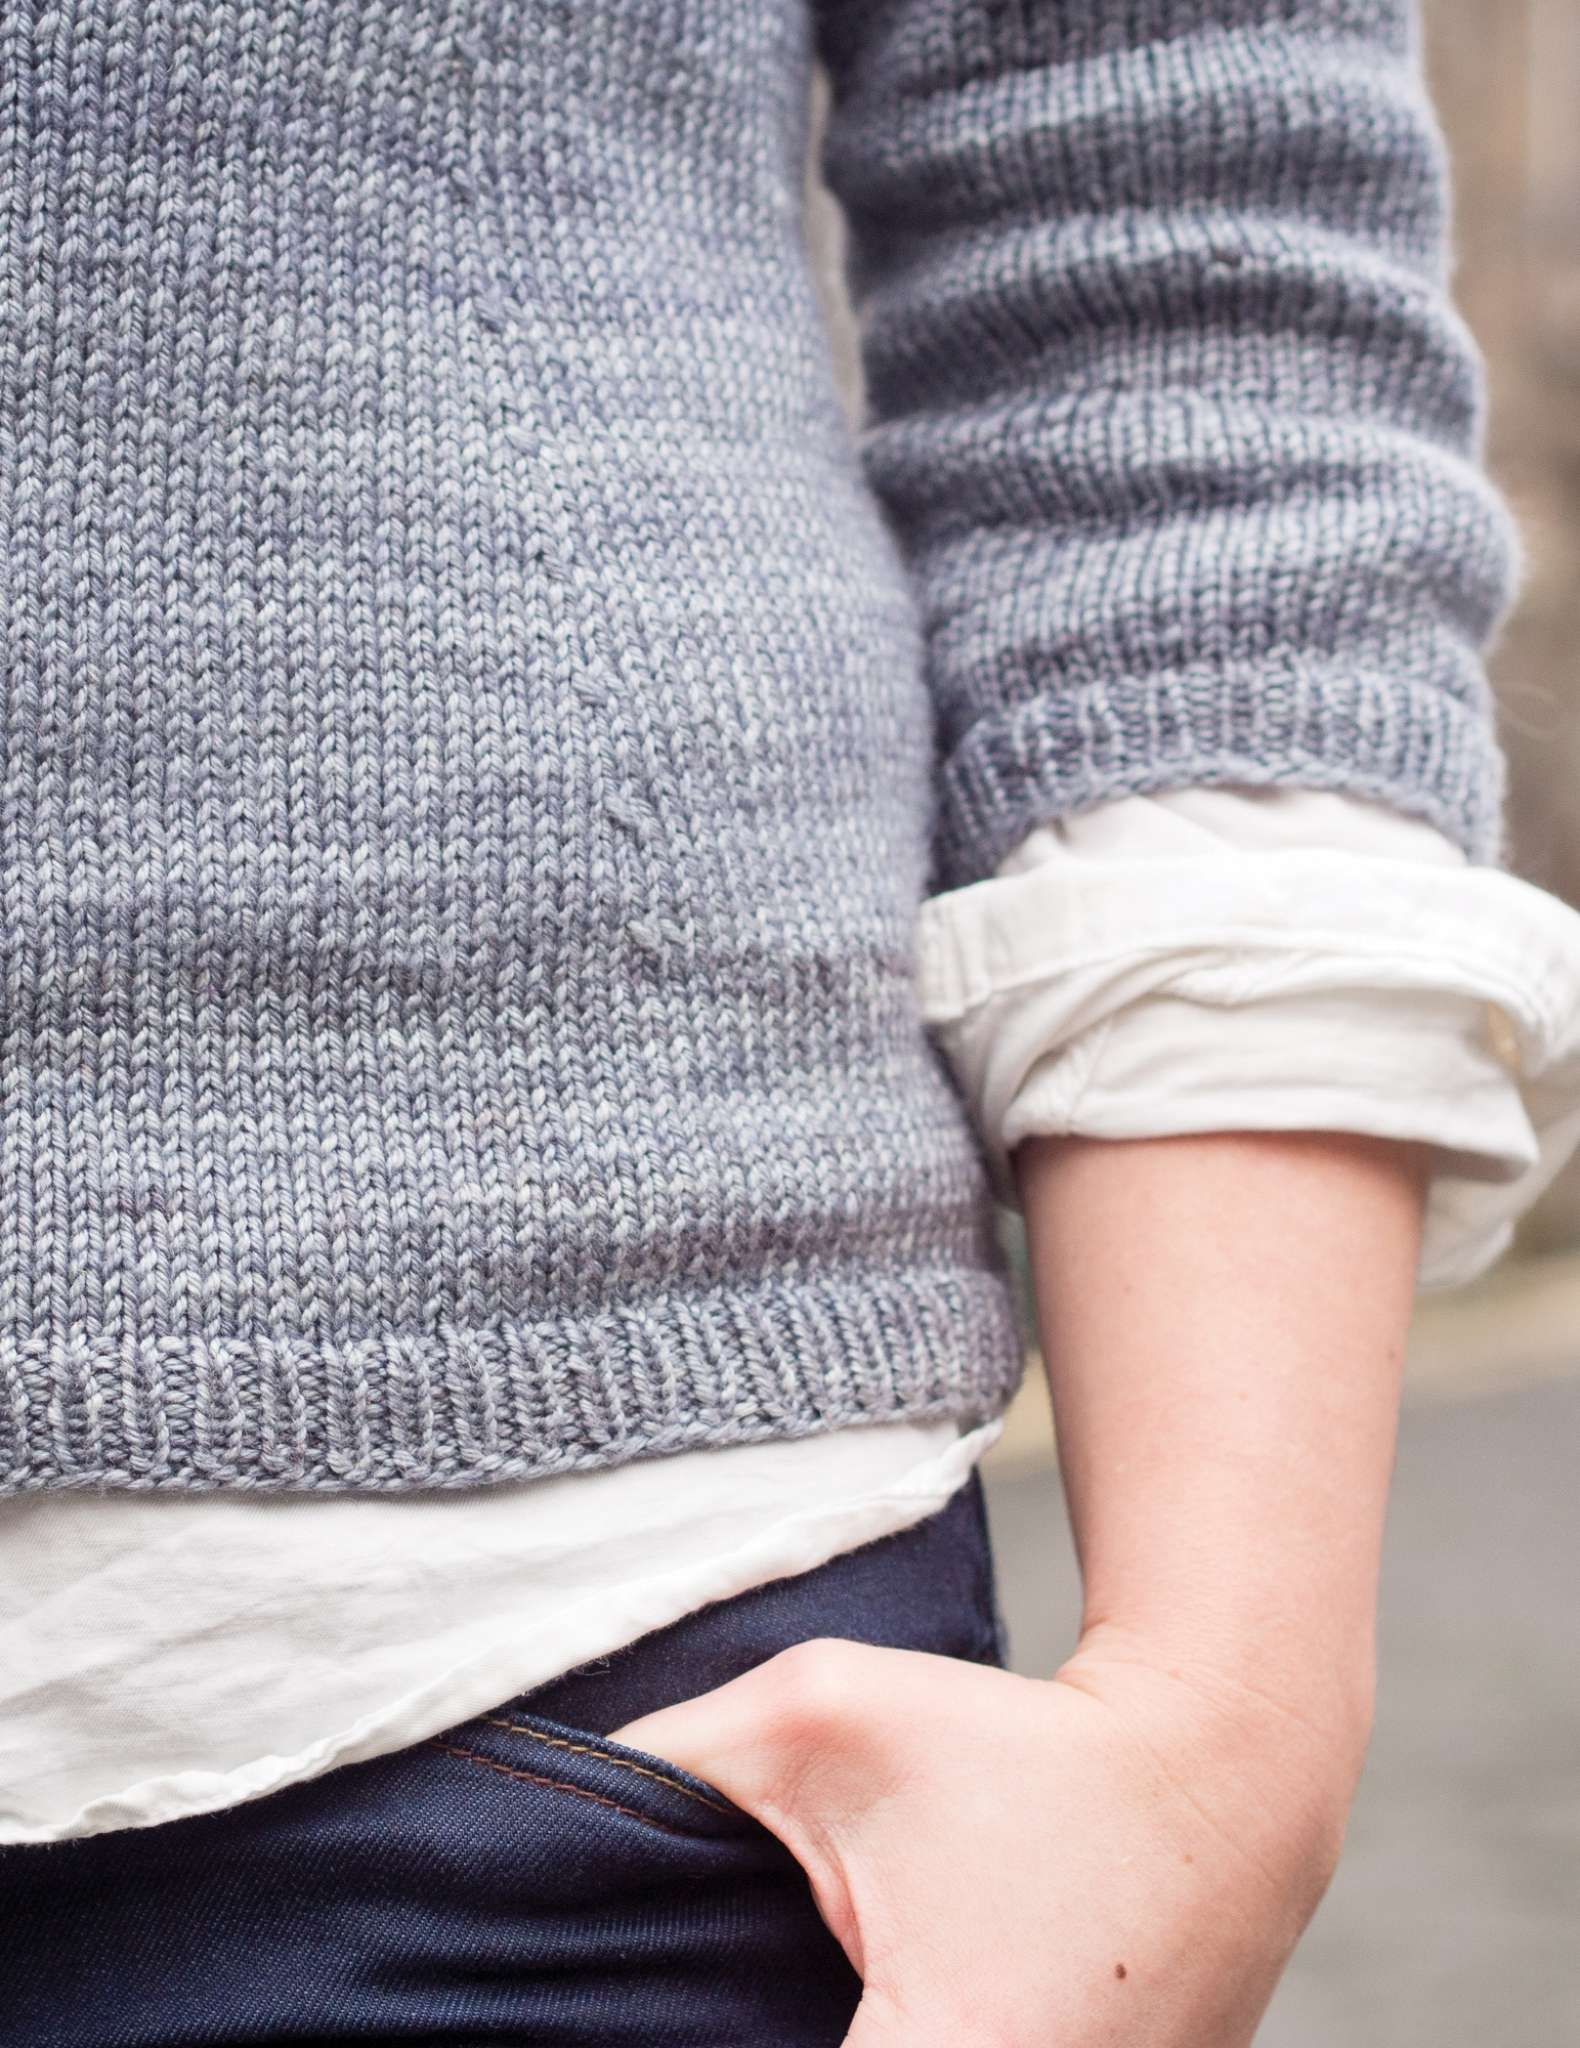 a close up of the lower side part of a grey sweater, with one arm hanging to the side with hand resting in the top of a jeans pocket. Hems of a white shirt show at the edges of the hem and cuff.